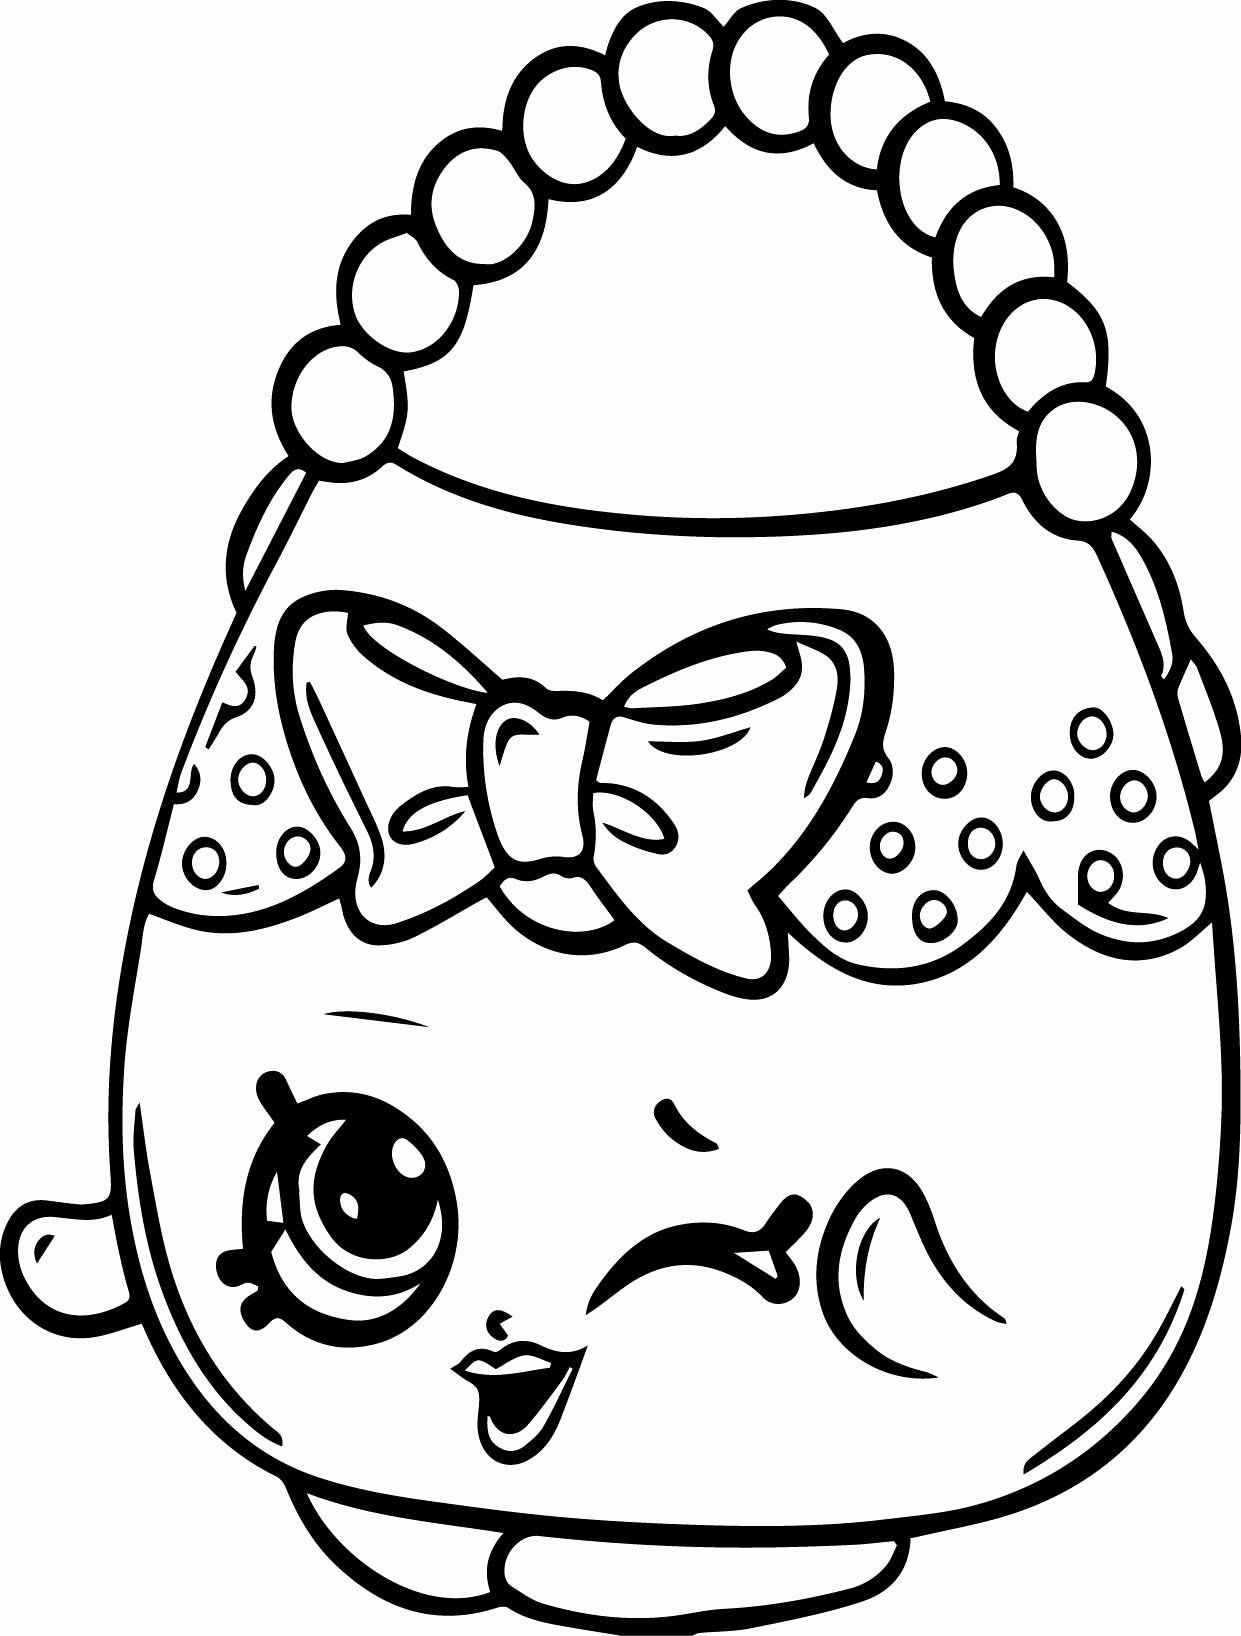 Shopkins Coloring Pages for Kids Awesome Shopkins Coloring ...